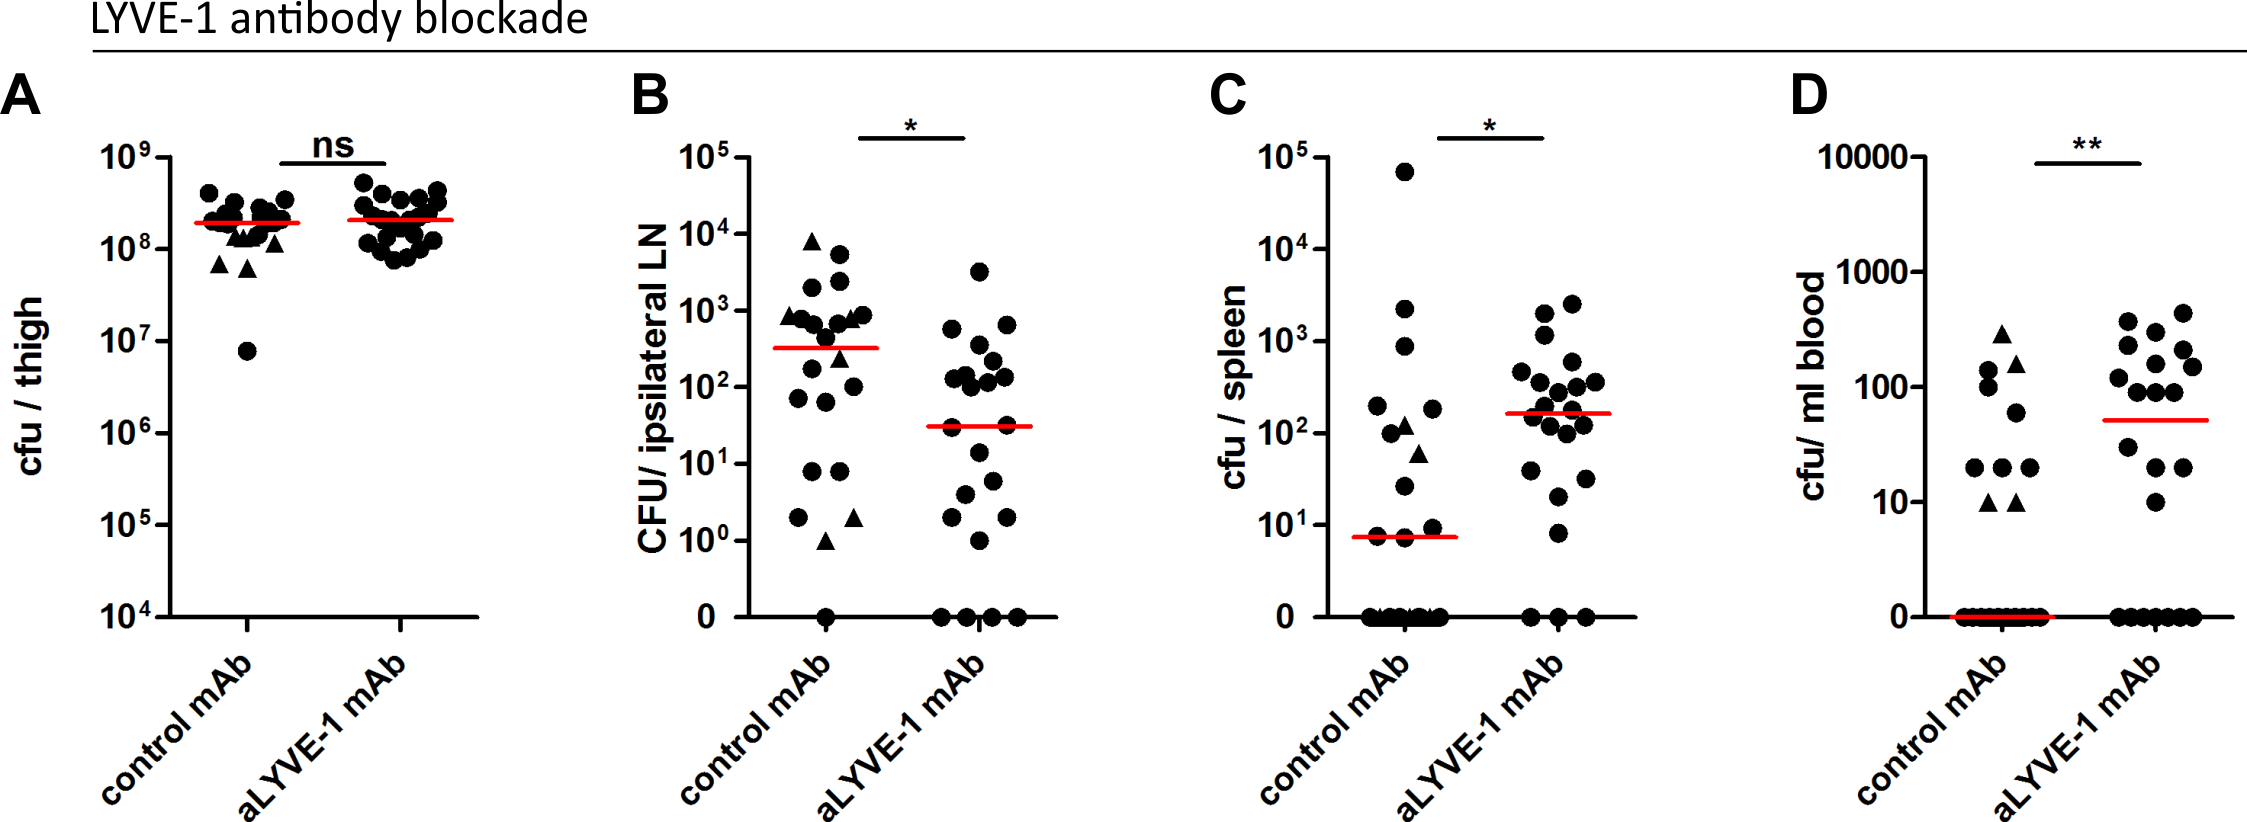 LYVE-1 functional blockade reduces GAS dissemination to draining lymph nodes.